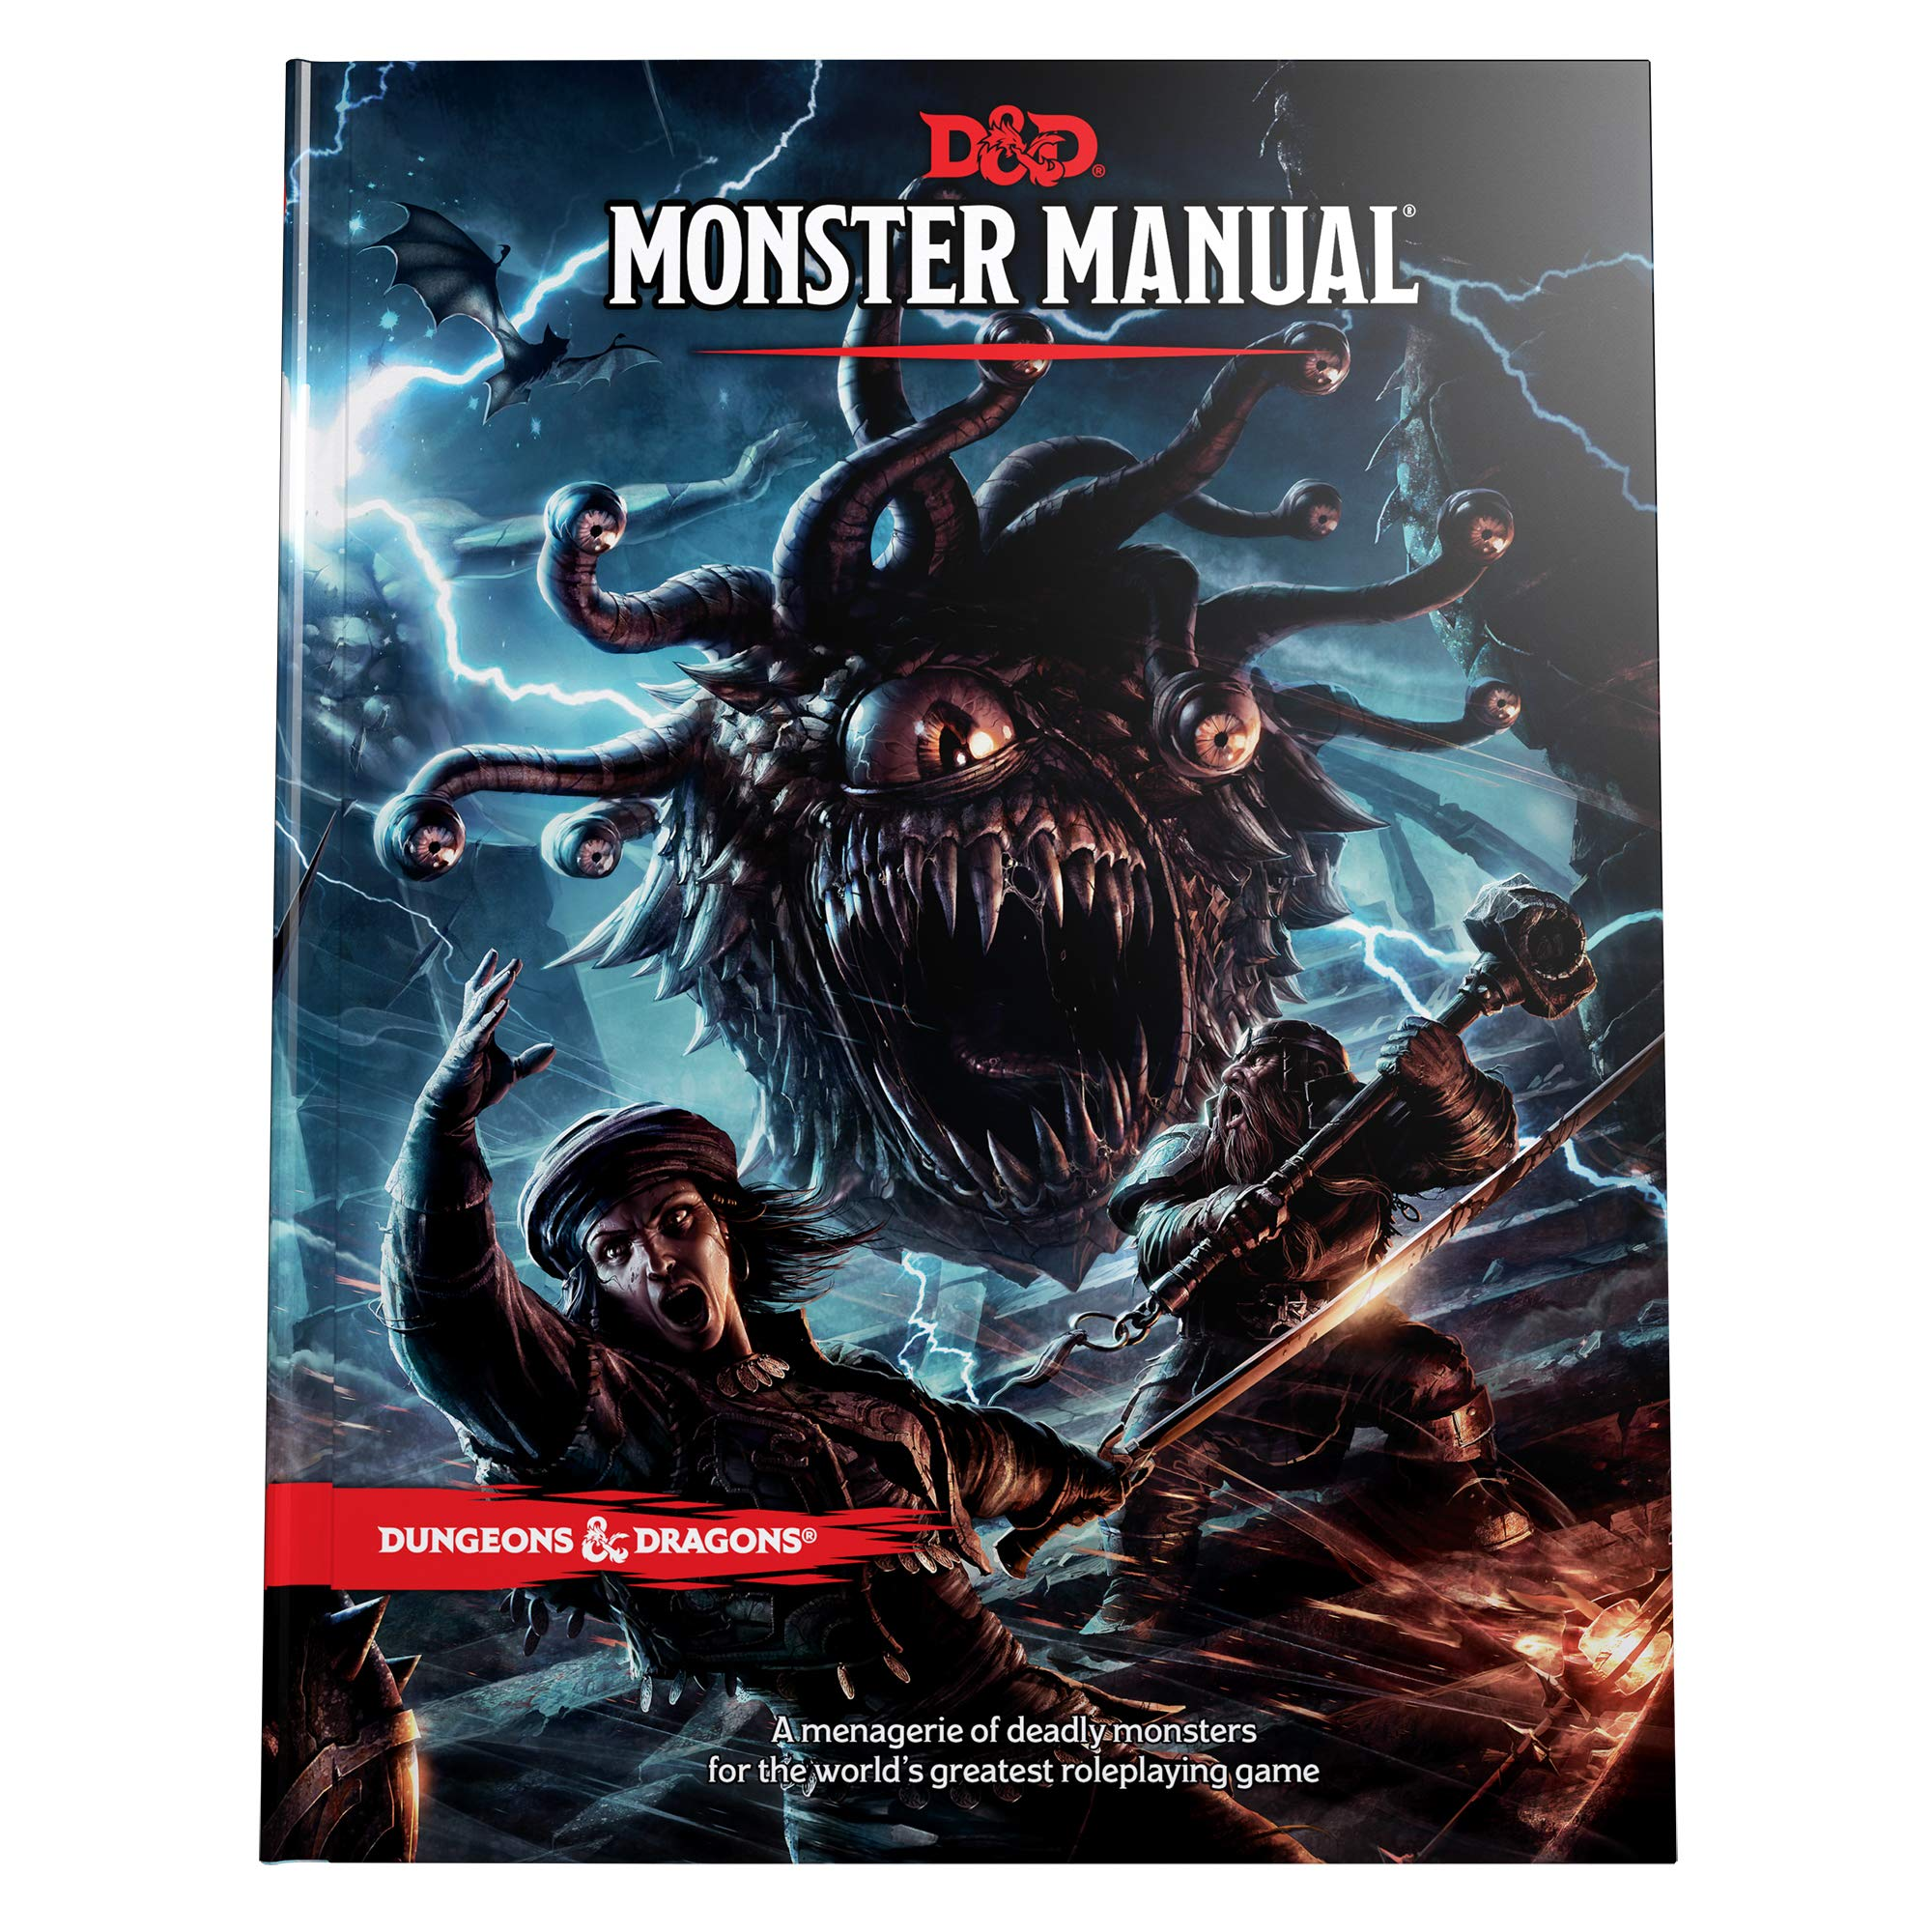 Dungeon's & Dragons: Monster Manual | Mythicos